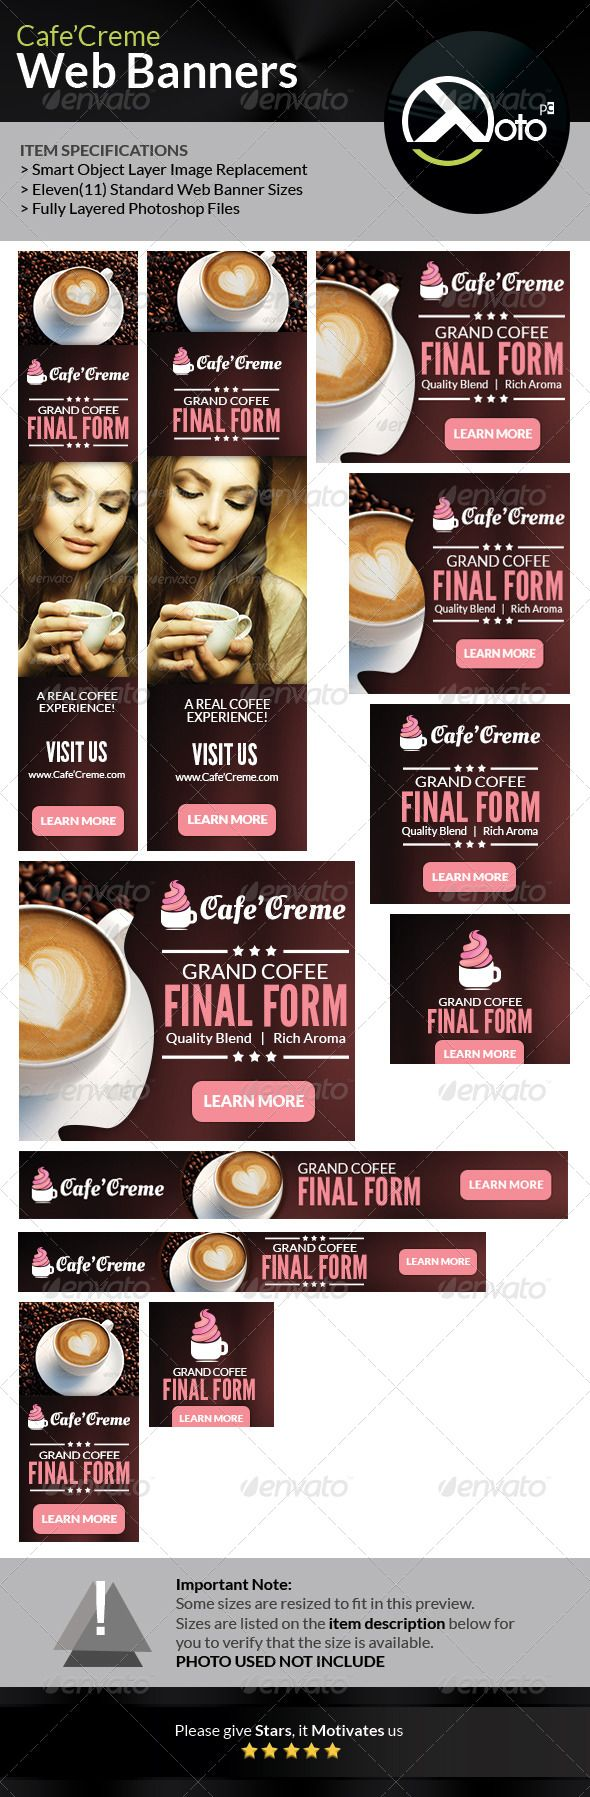 Cafe Creme Coffee Store Web Banners